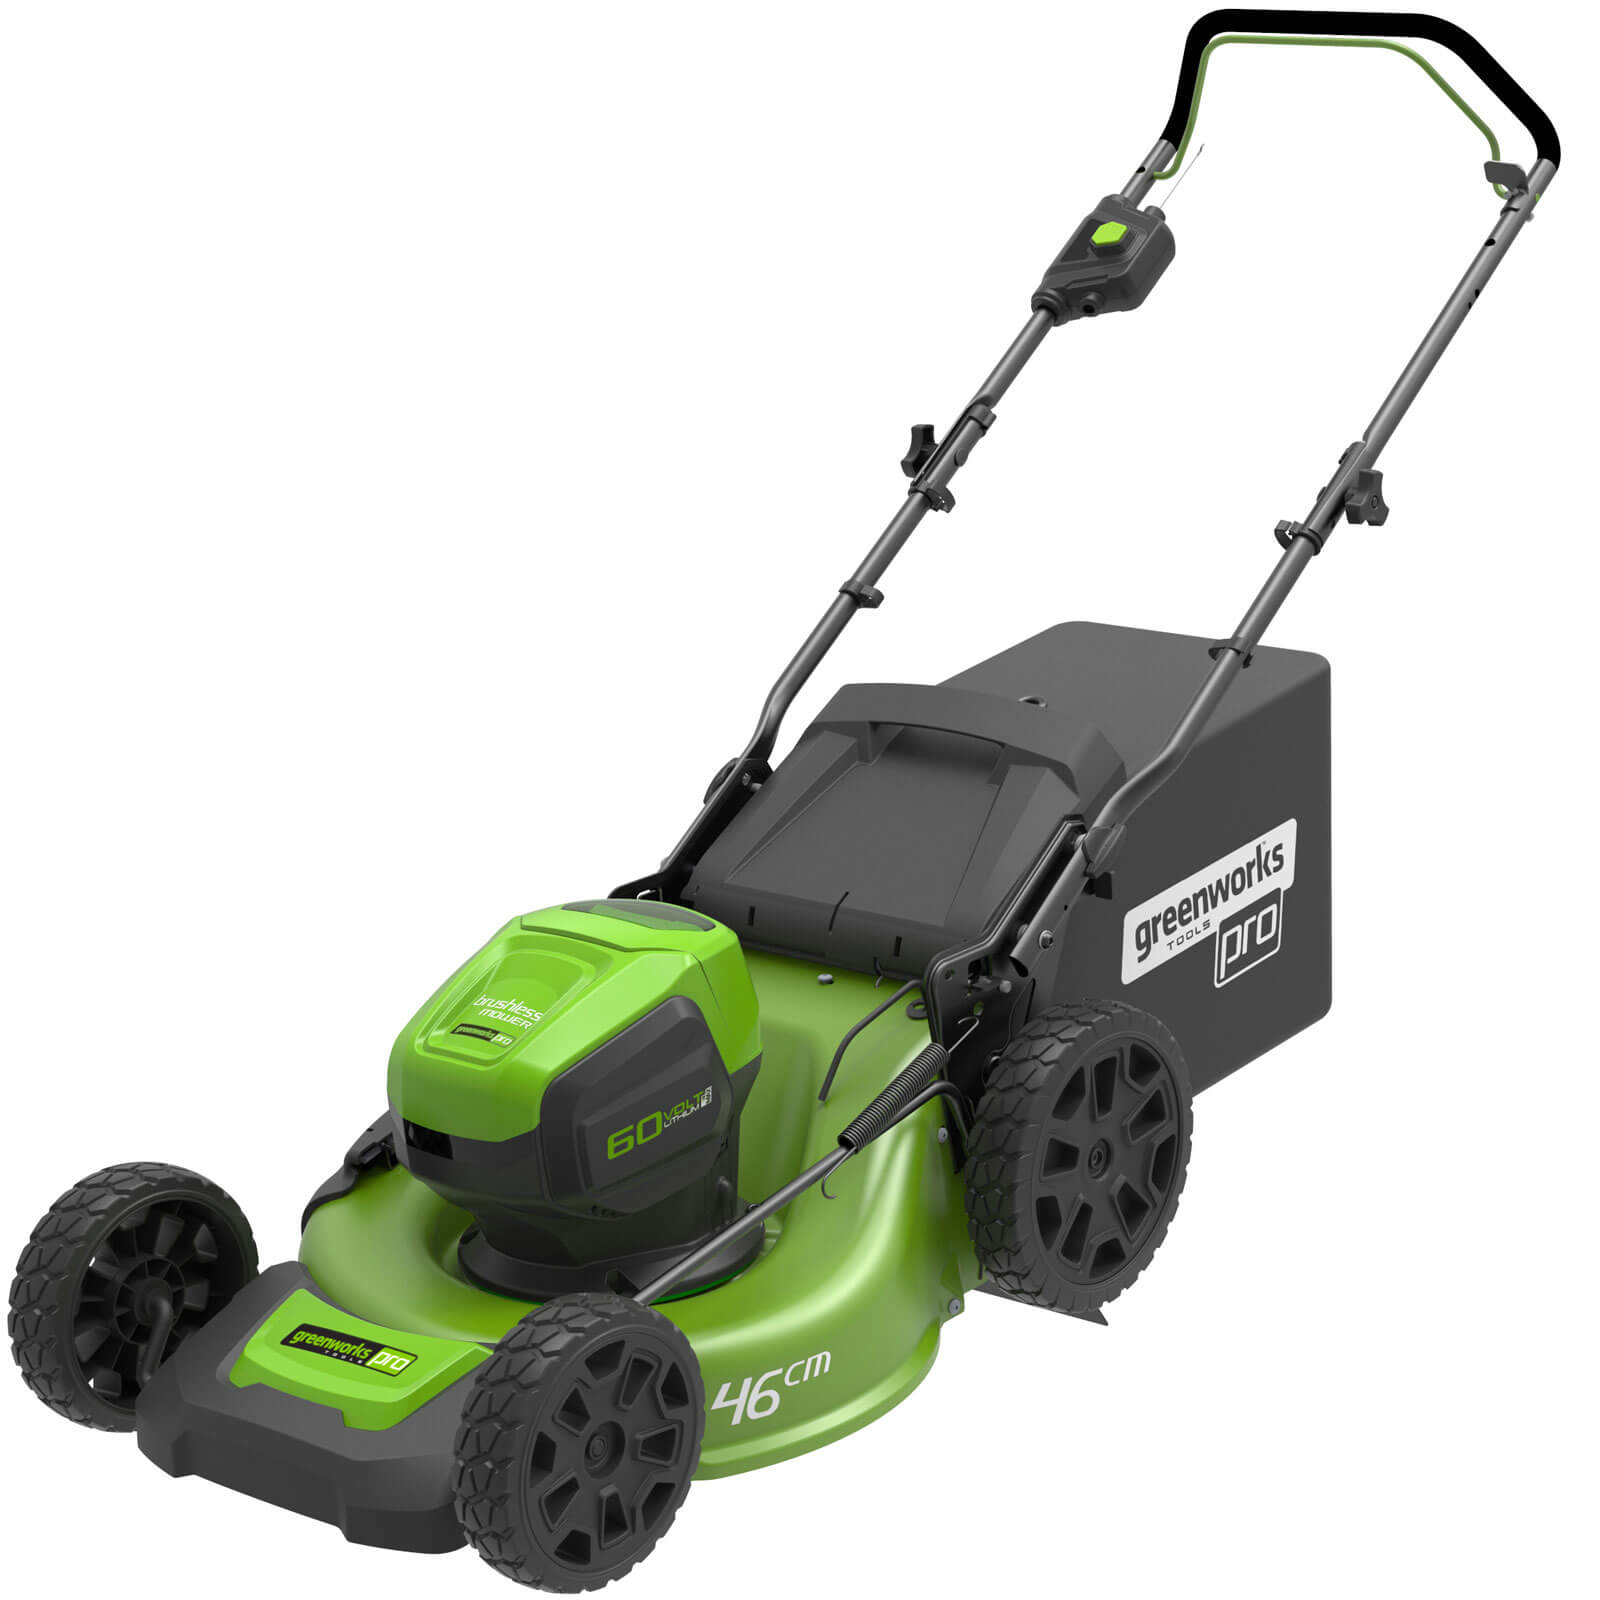 Image of Greenworks GD60LM46 60v Cordless Push Rotary Lawnmower 460mm 1 x 2ah Li-ion Charger